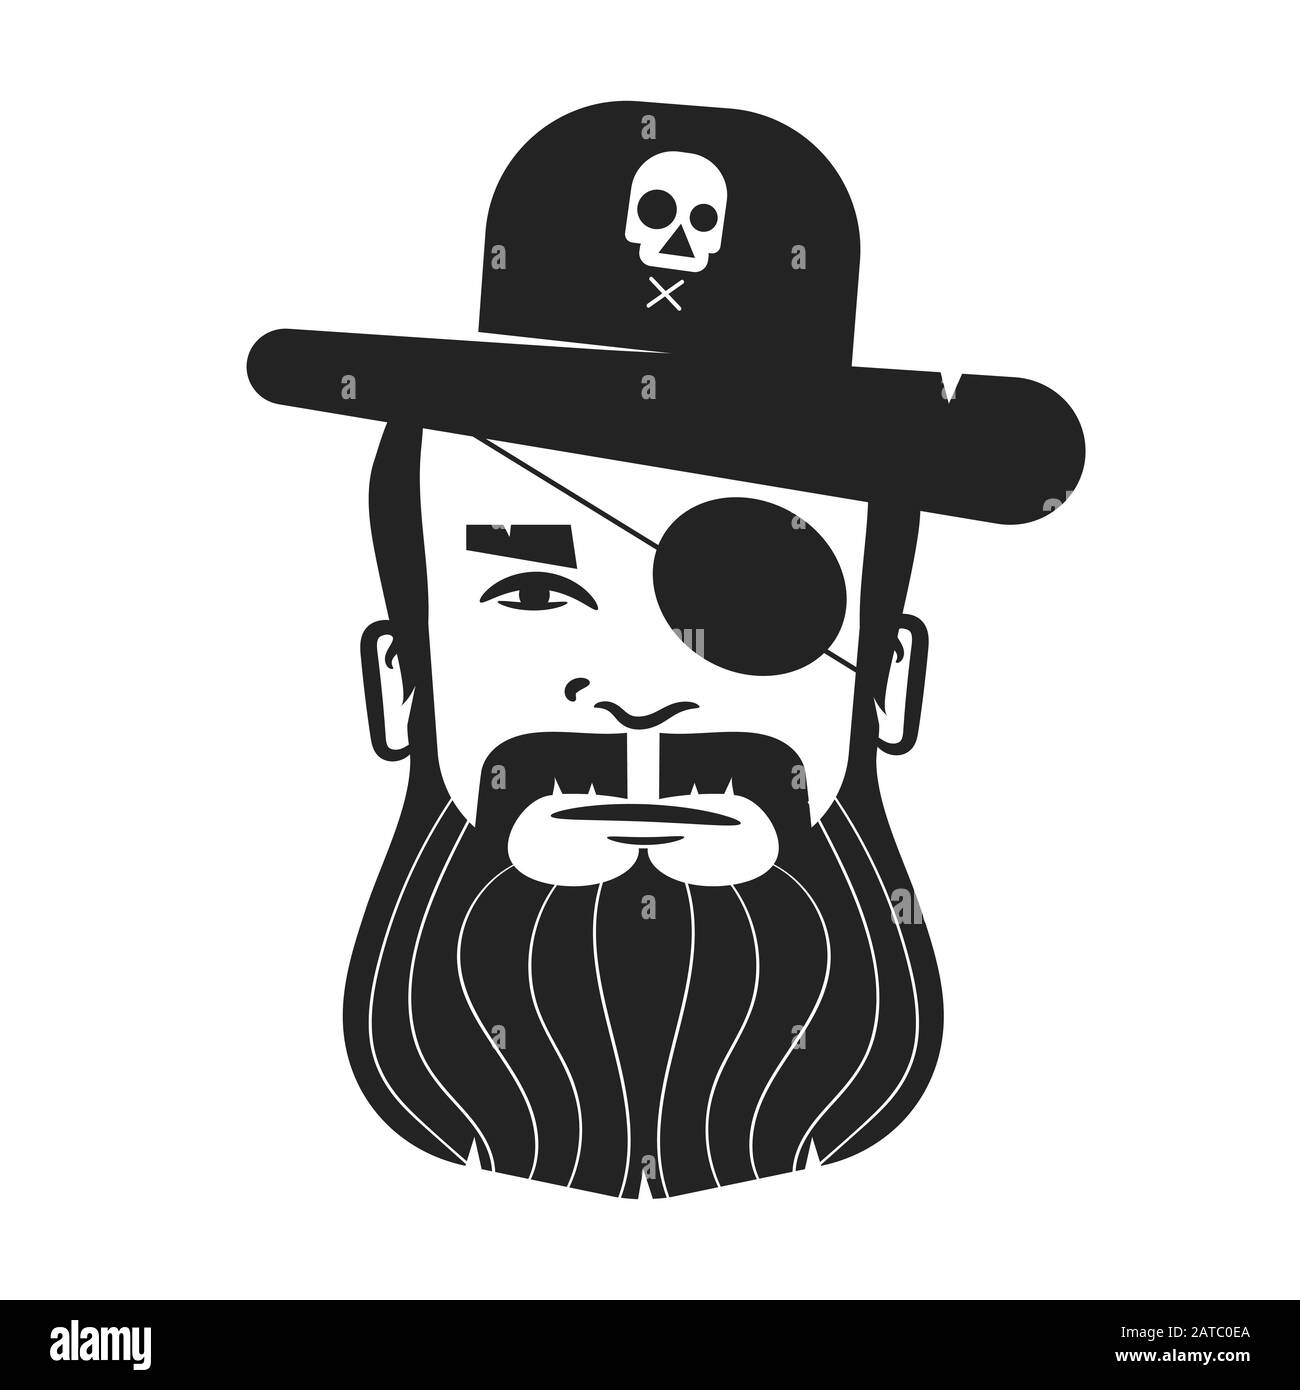 Pirate Head Of A One-eyed Pirate With A Beard And Mustache On A White Background. Logo For Posters, Posters Stock Vector